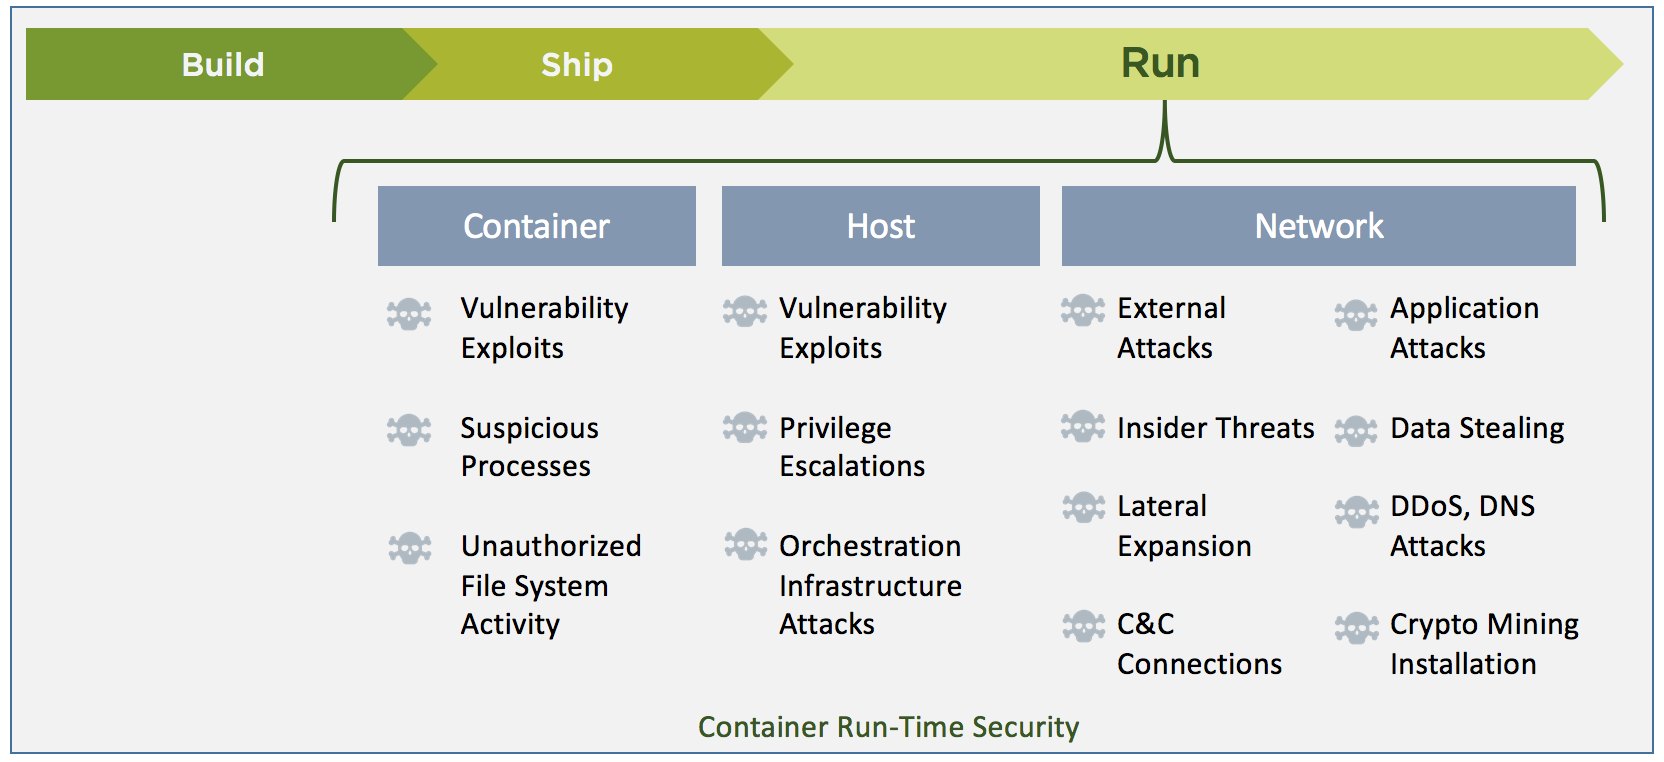 What Is Complete Run-Time Container Security?